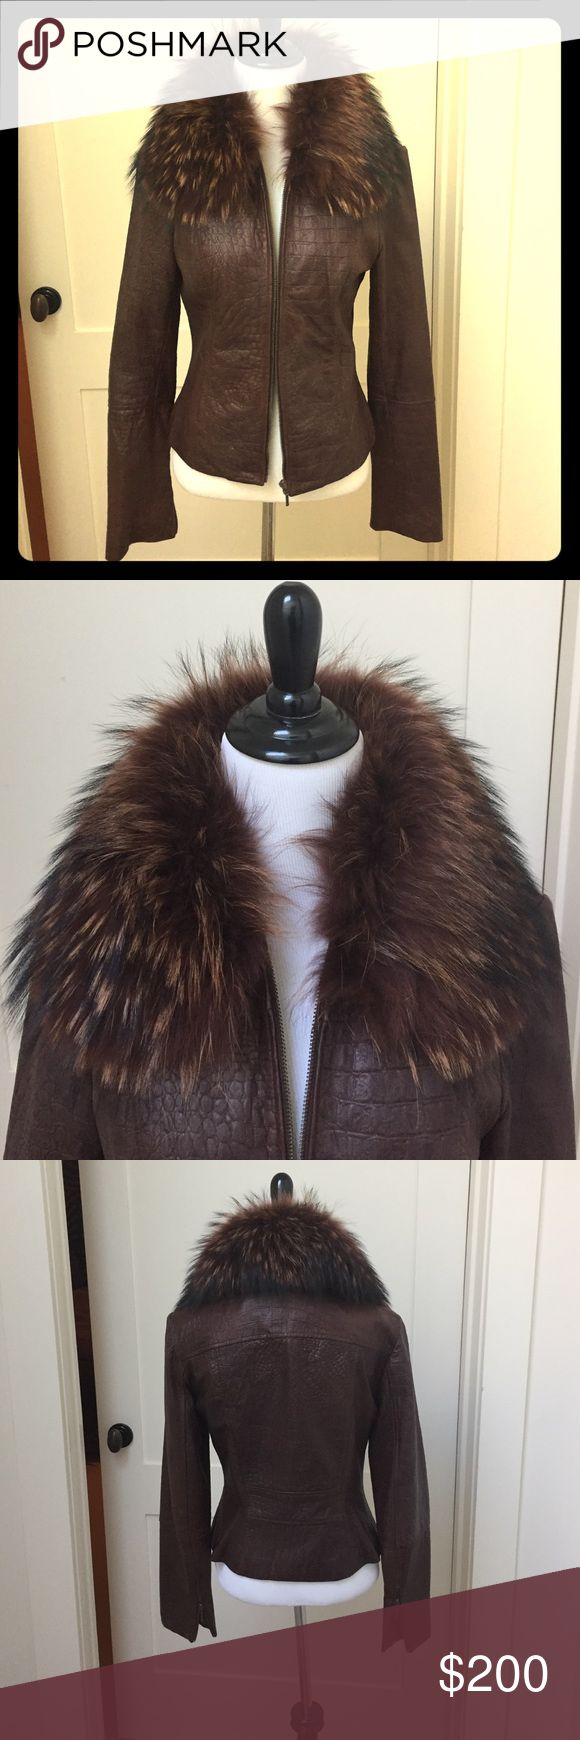 "Lillie Rubin leather jacket Gorgeous chocolate brown crocodile embossed leather jacket with detachable fox fur collar. Fitted and thin and looks beautiful on. Zipper front. Very expensive looking. 21"" center back. 25"" sleeves with zippers. Gently worn. Superb condition. lillie Rubin Jackets & Coats"